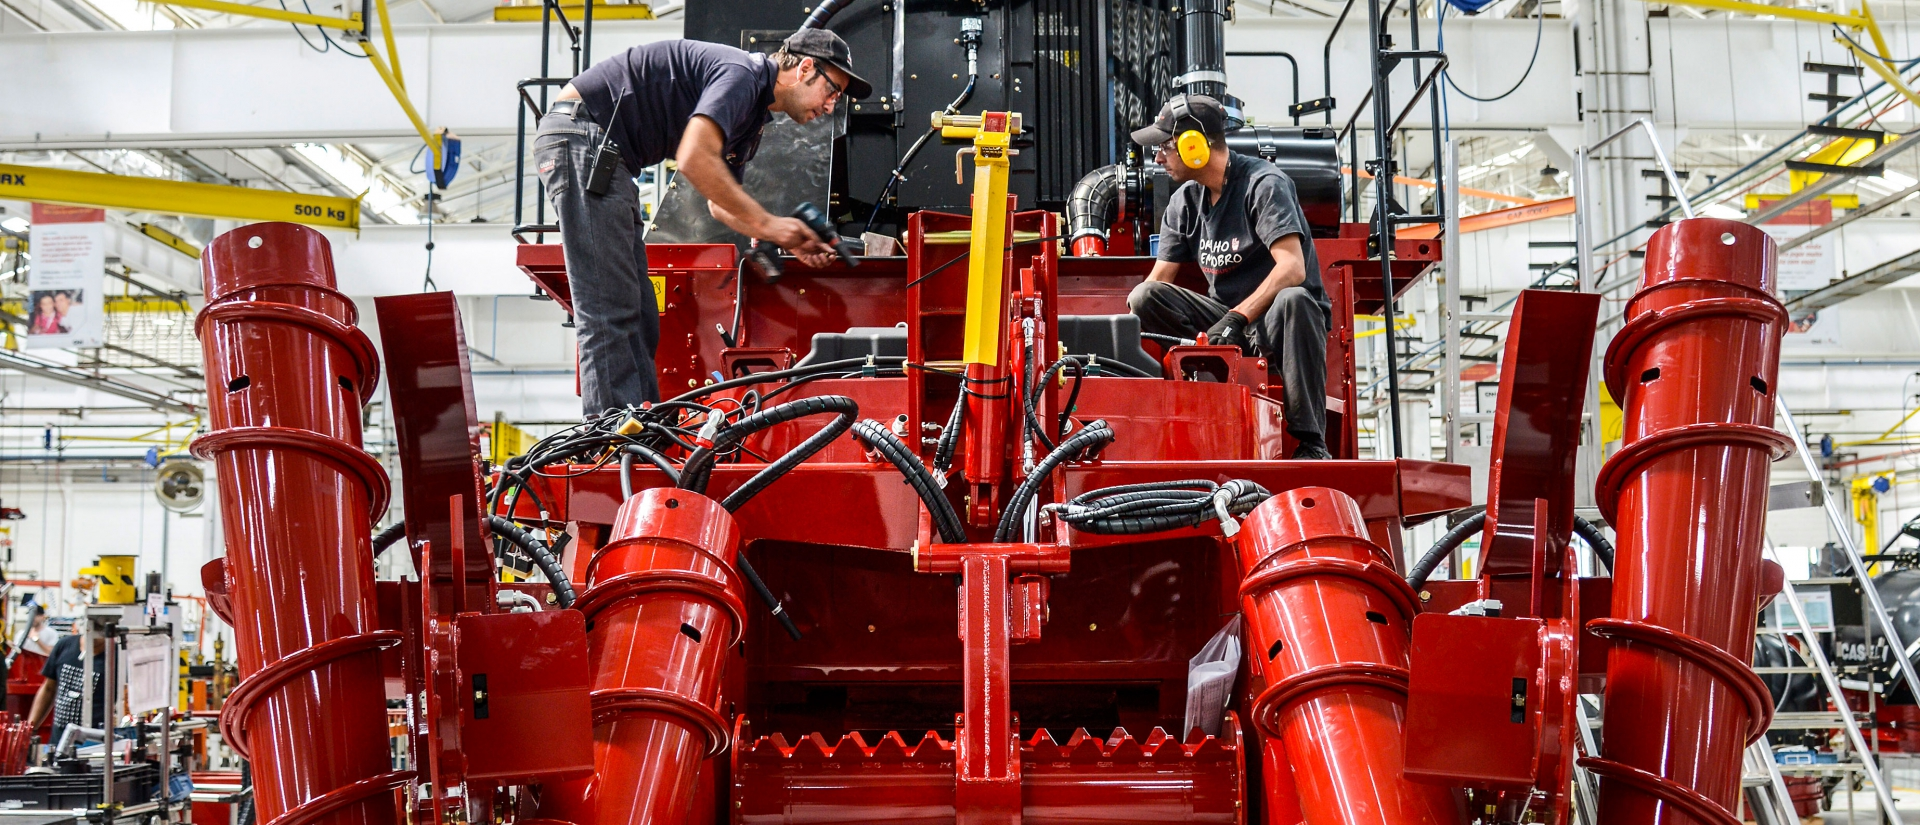 Sugar cane harvesters at CNH's production plant in Piracicaba, Brazil.